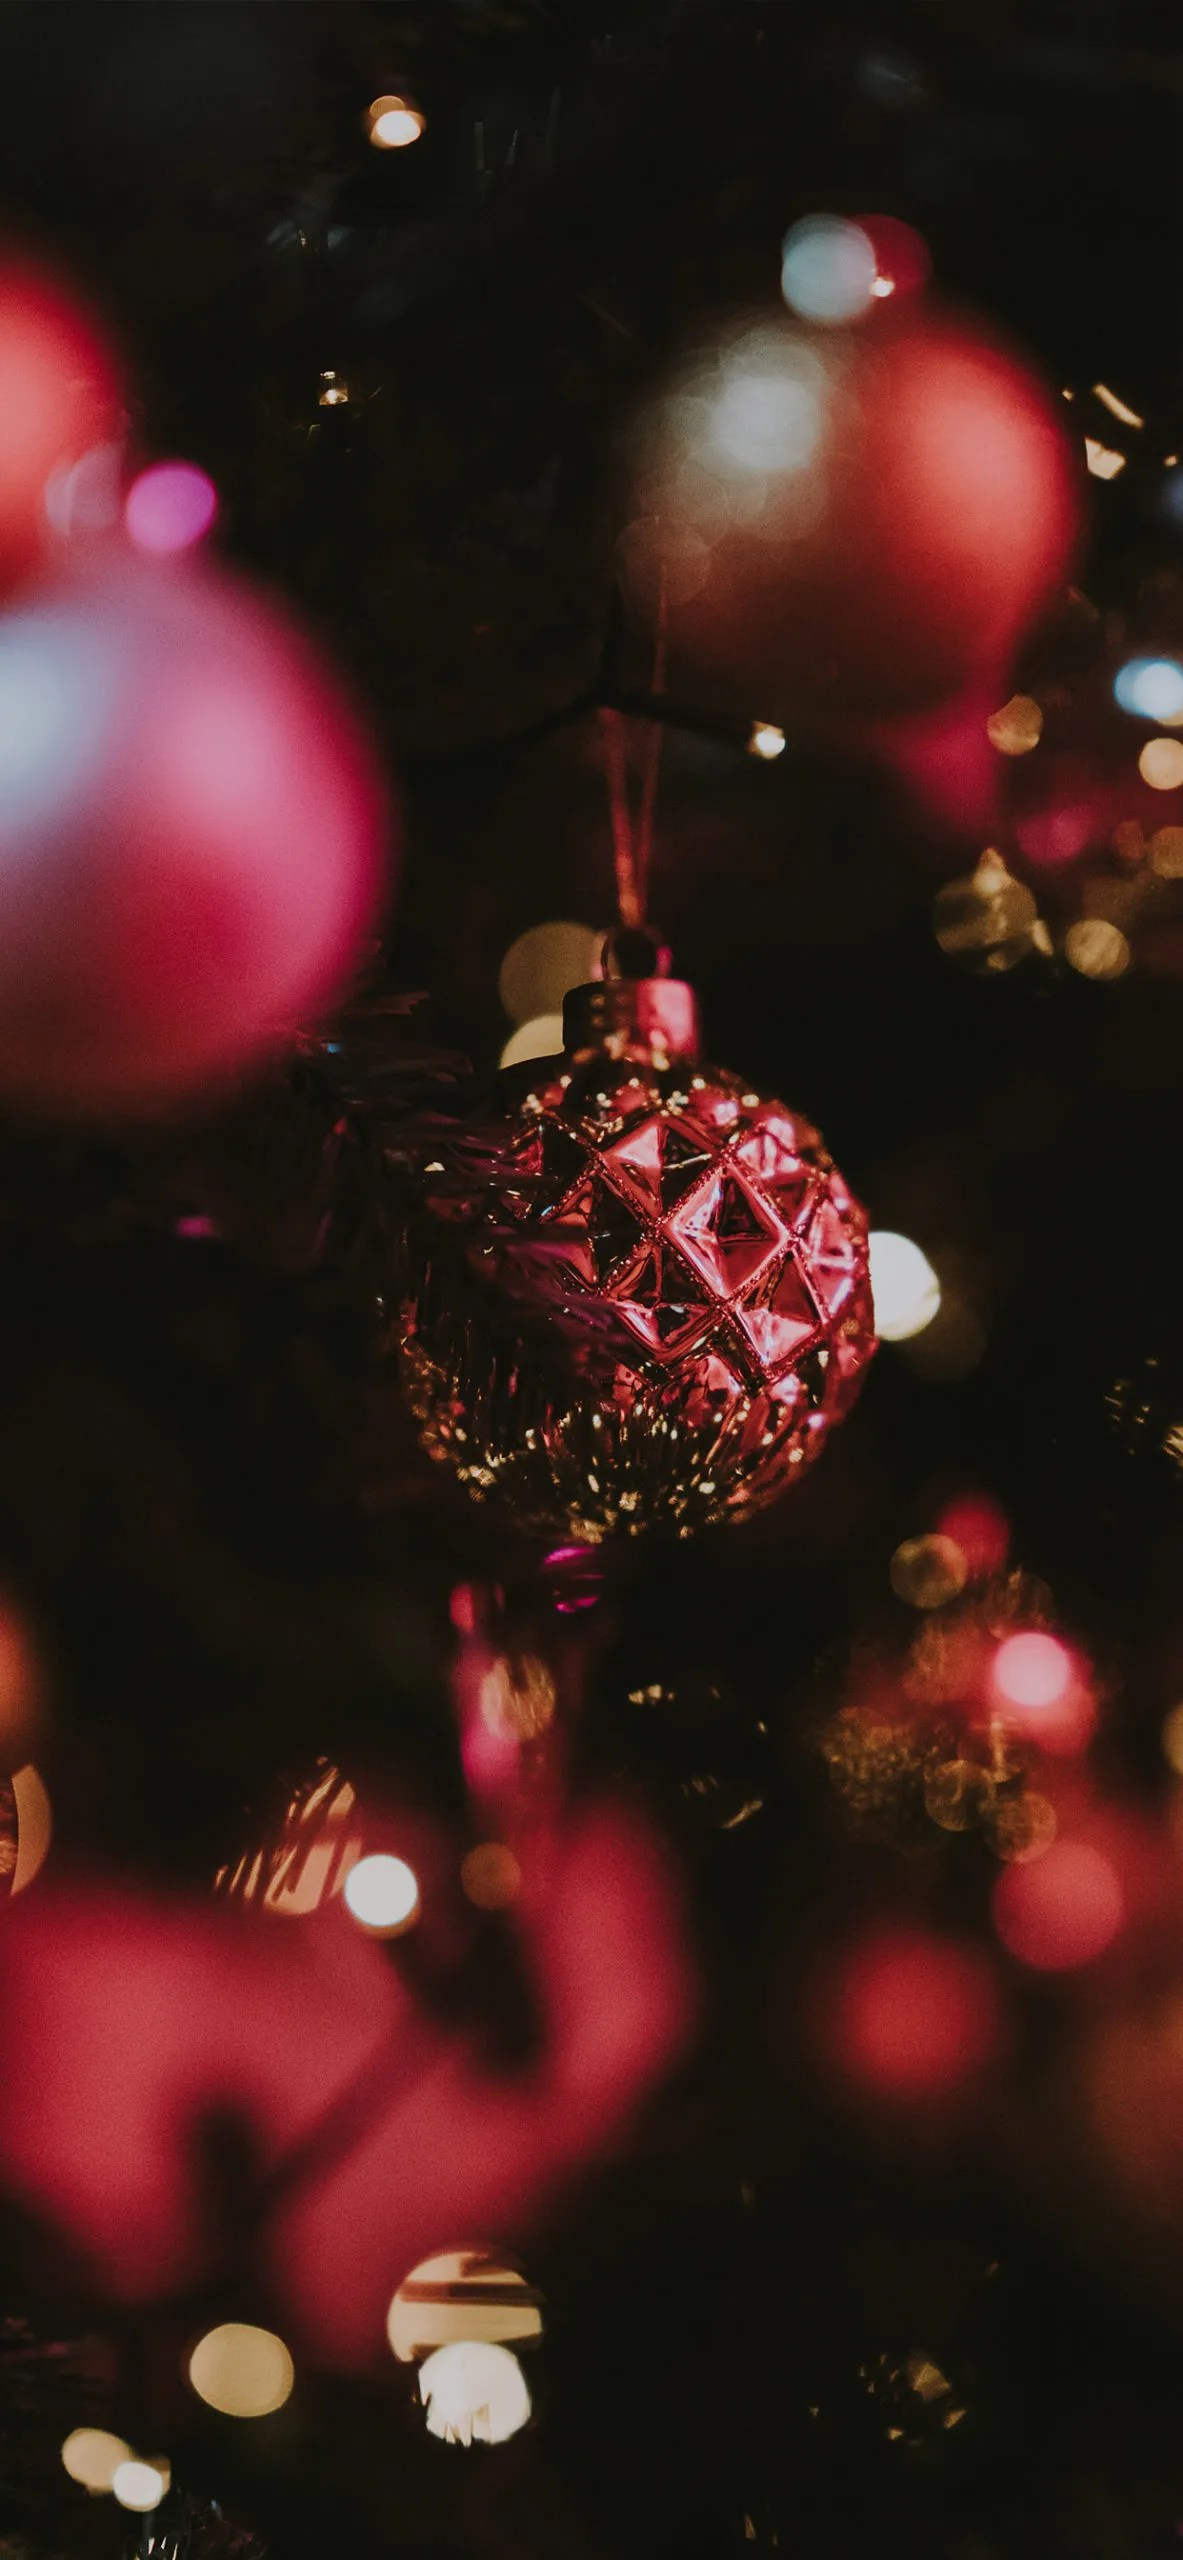 iphone wallpapers ball2 scaled Christmas balls